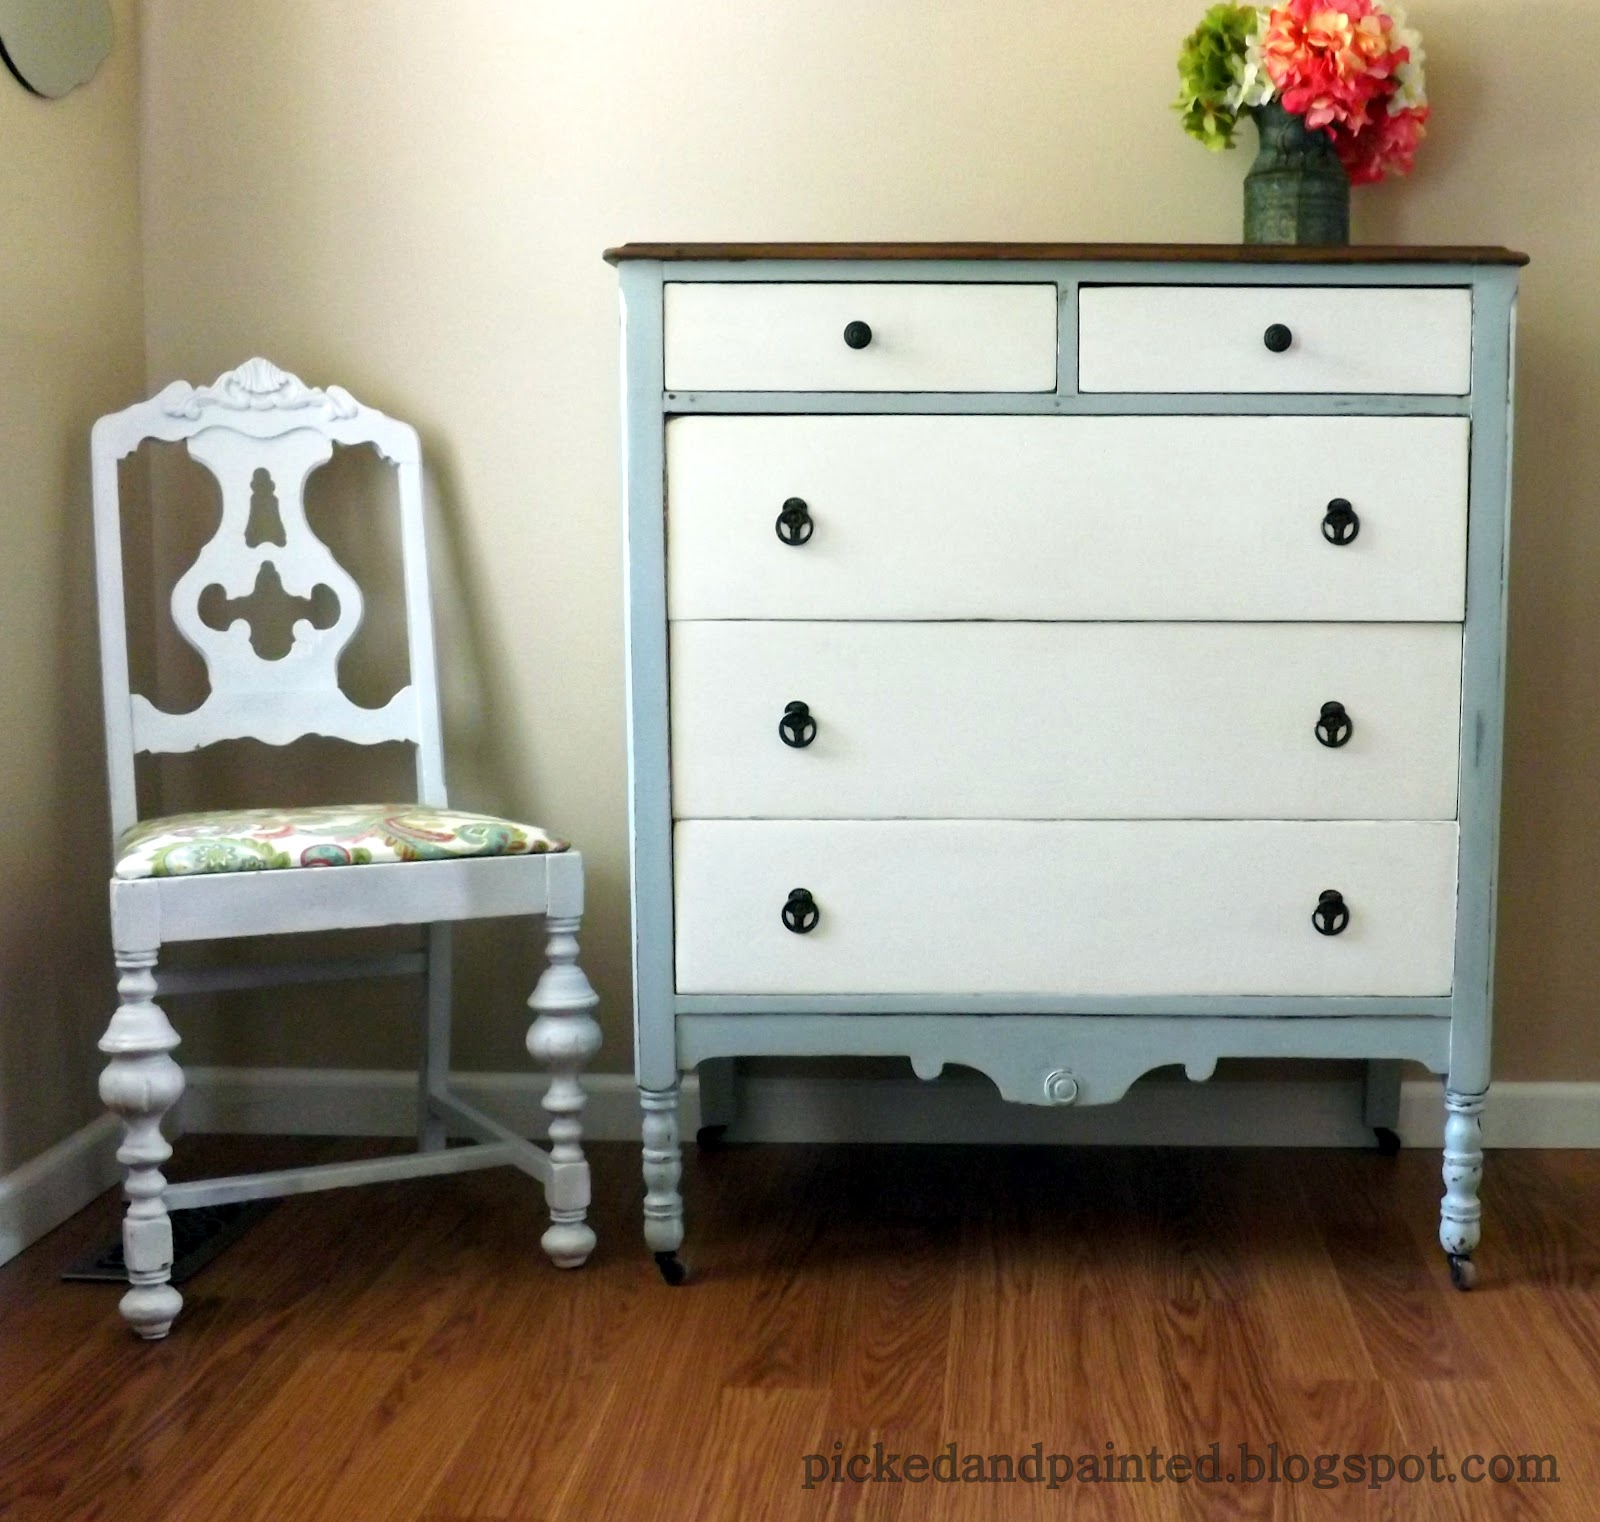 Helen Nichole Designs: French Country Dressers Before & After